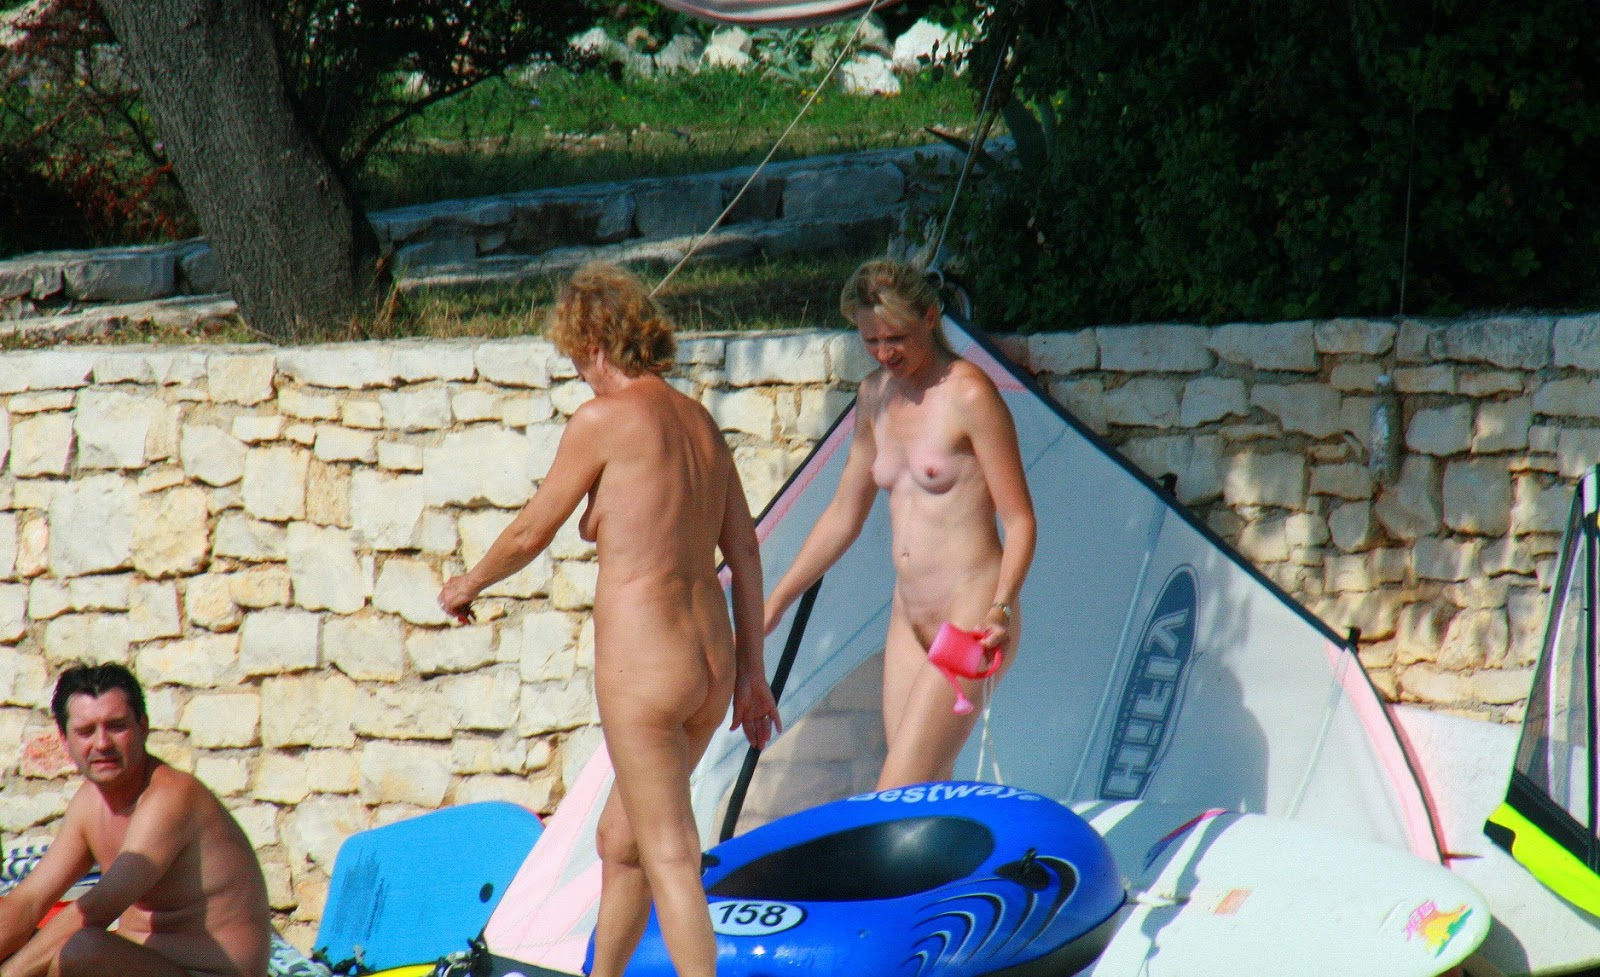 Remarkable, valuable Croatia nudist family phrase